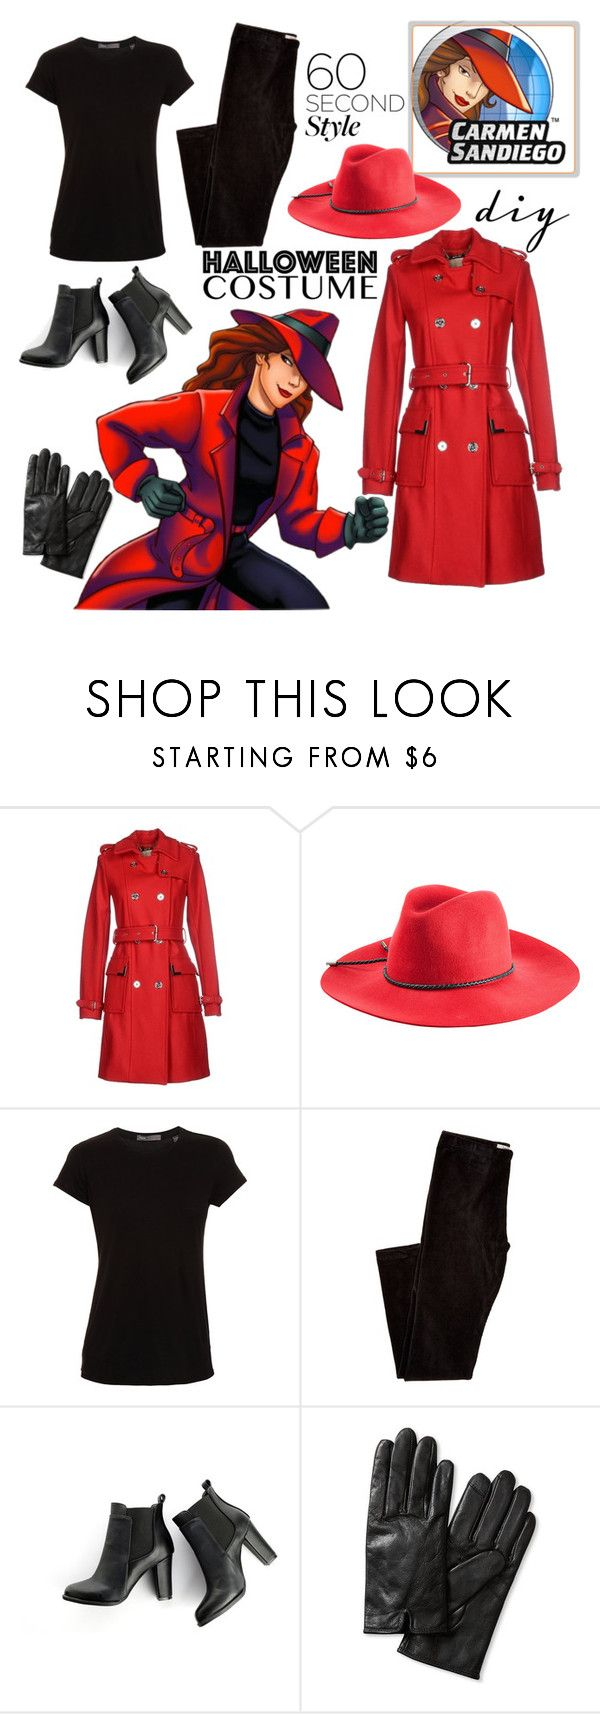 """Diy Halloween costume: Carmen Sandiego"" by starspy ❤ liked on Polyvore featuring MICHAEL Michael Kors, Emilio Pucci, Vince, MANGO and Banana Republic"